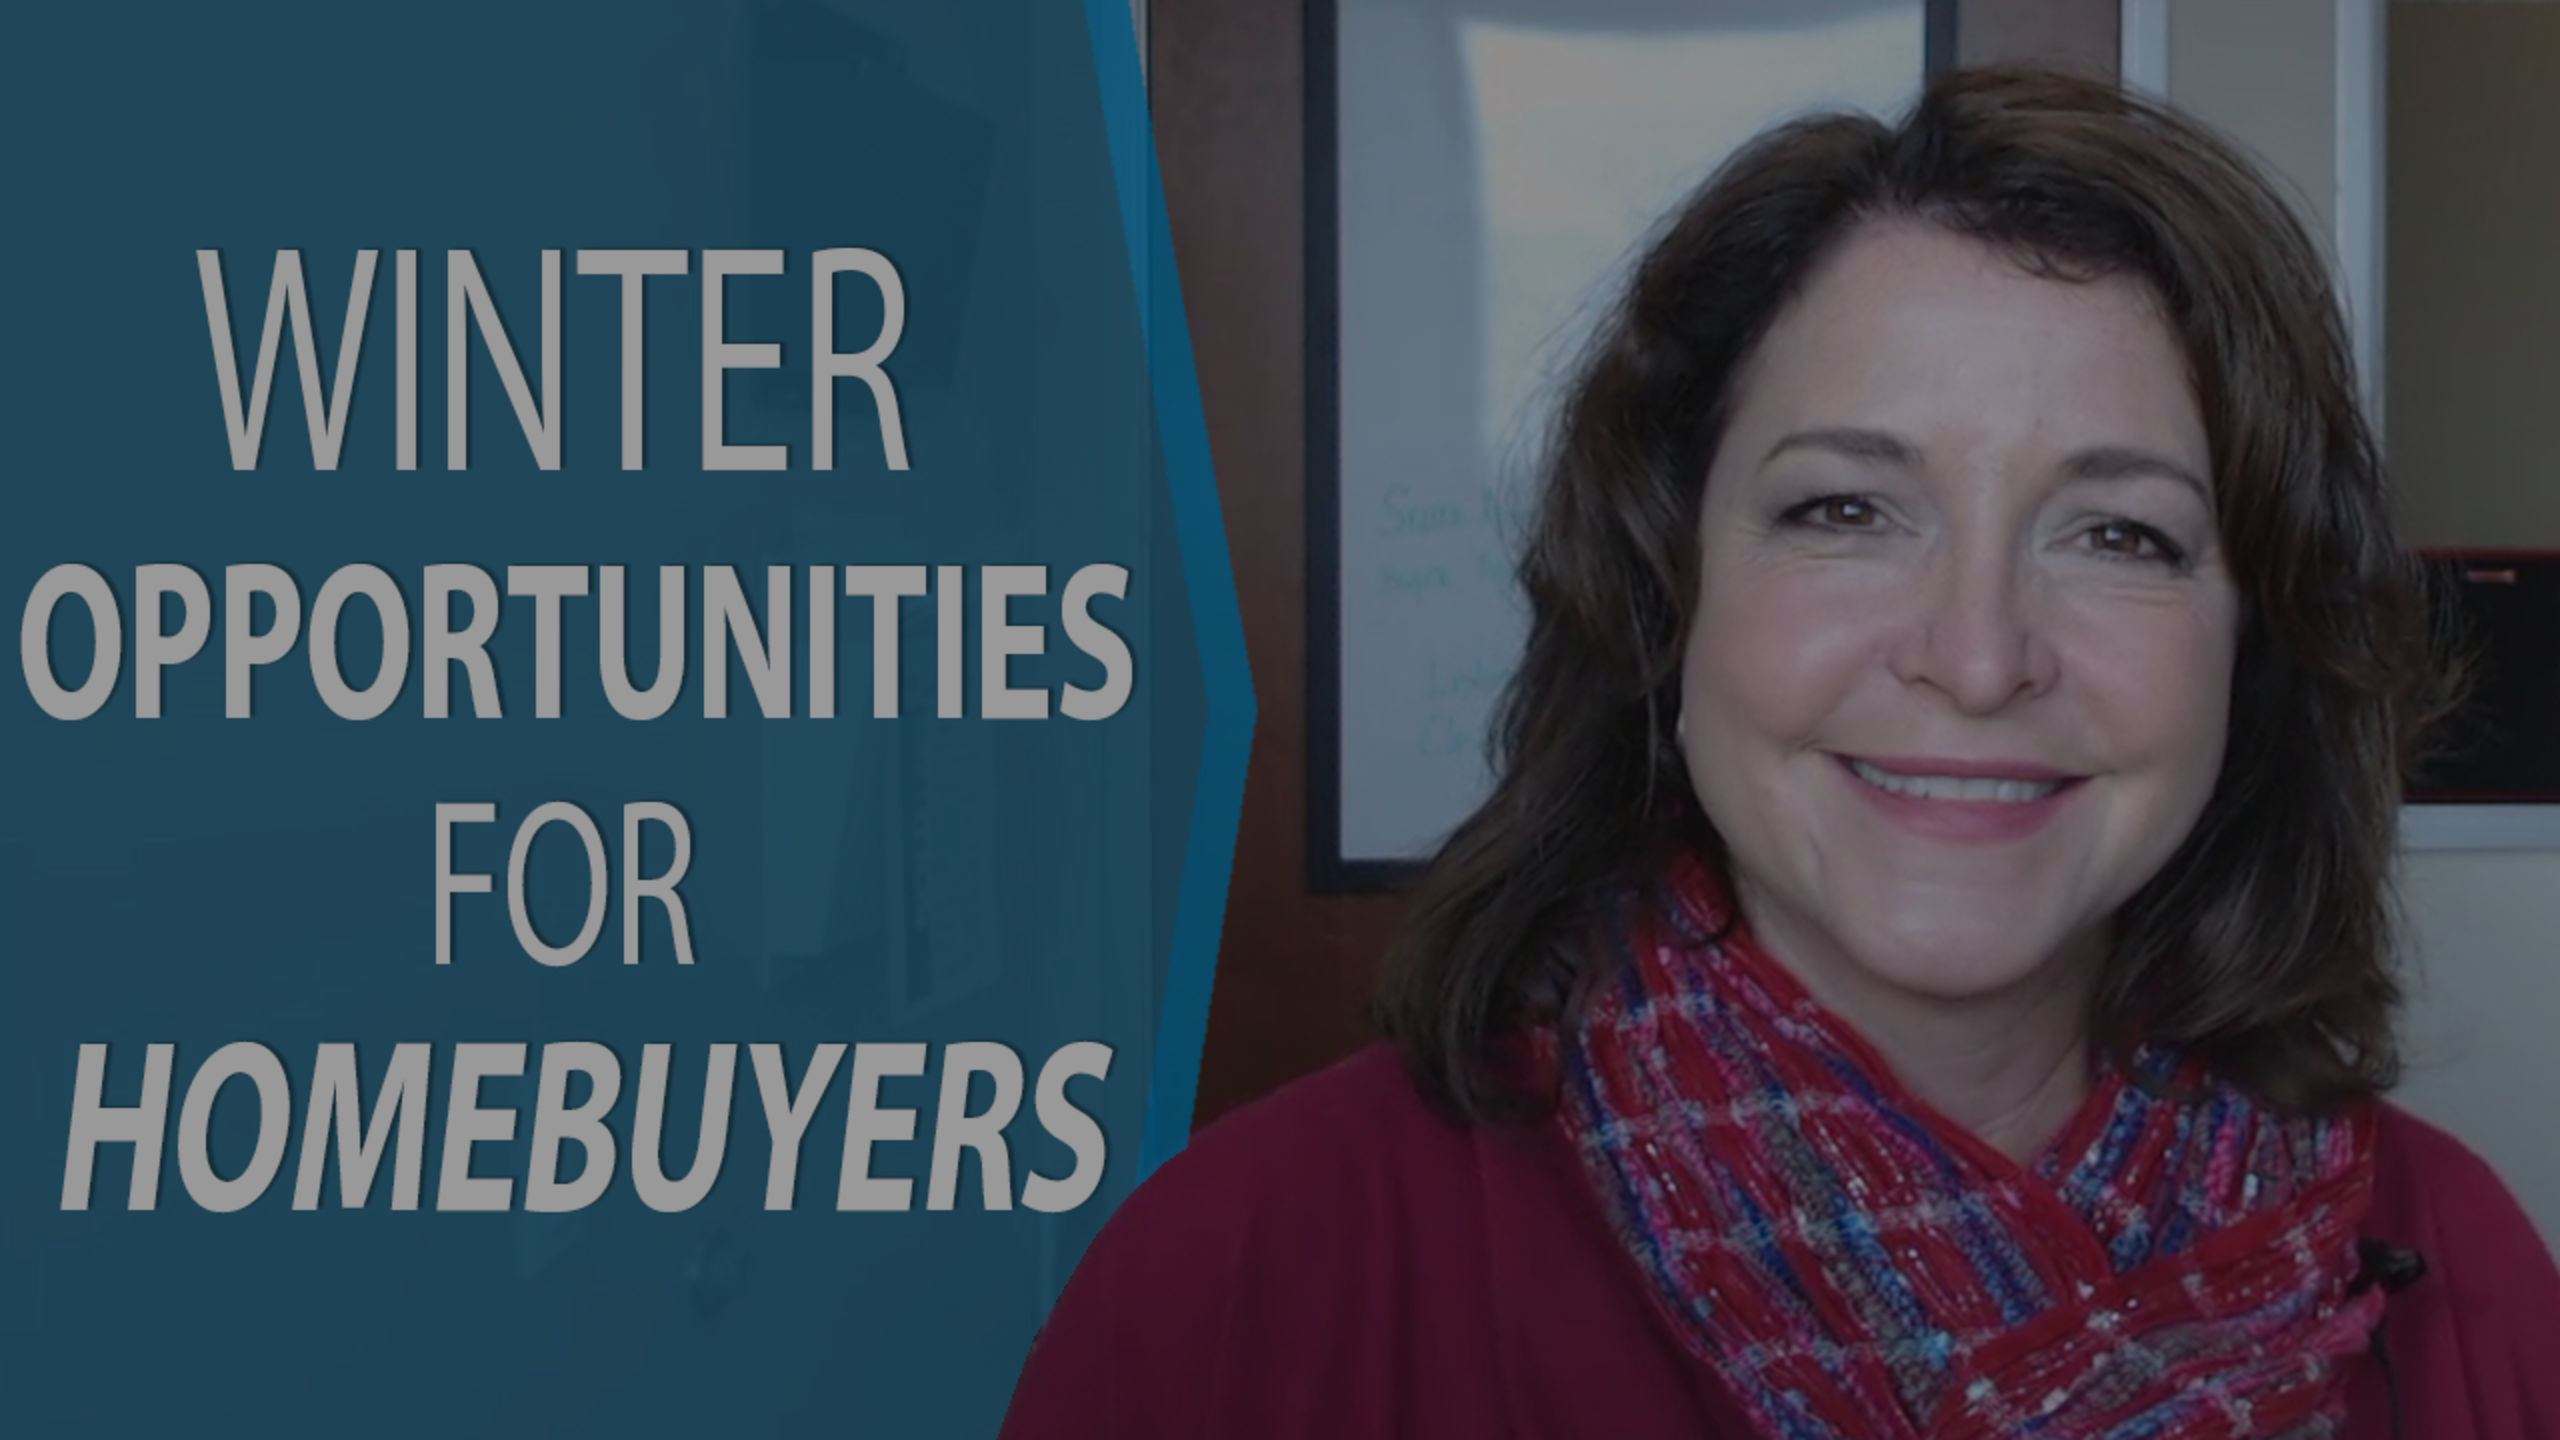 Homebuyers, Rejoice! Winter Is a Great Time to Purchase